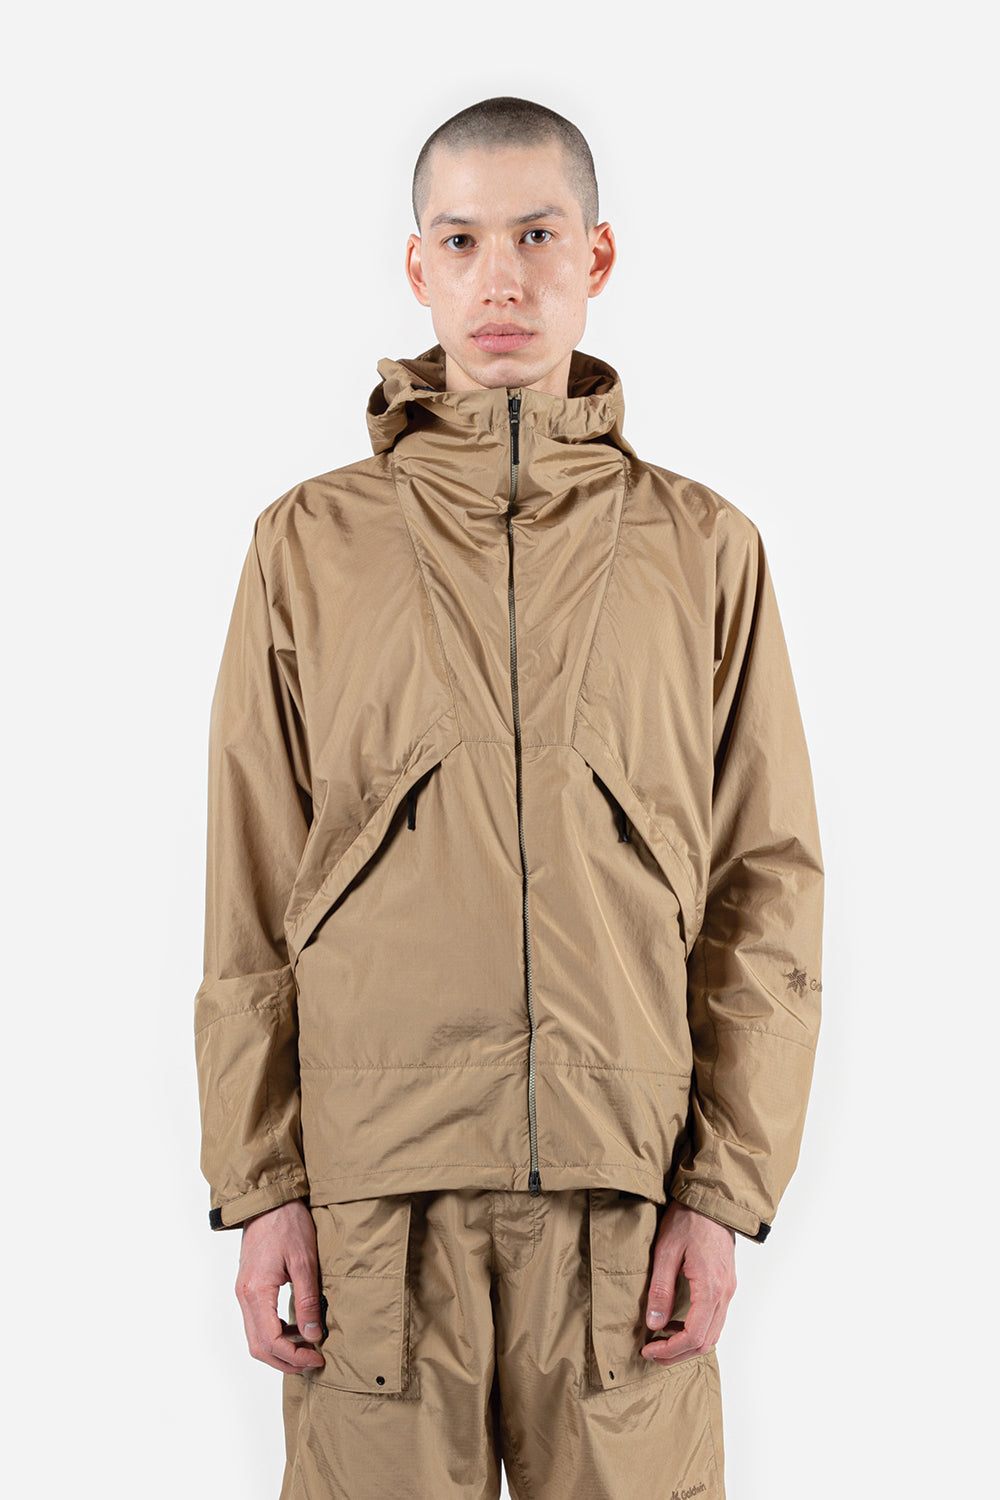 goldwin-element-light-jacket-clay-beige